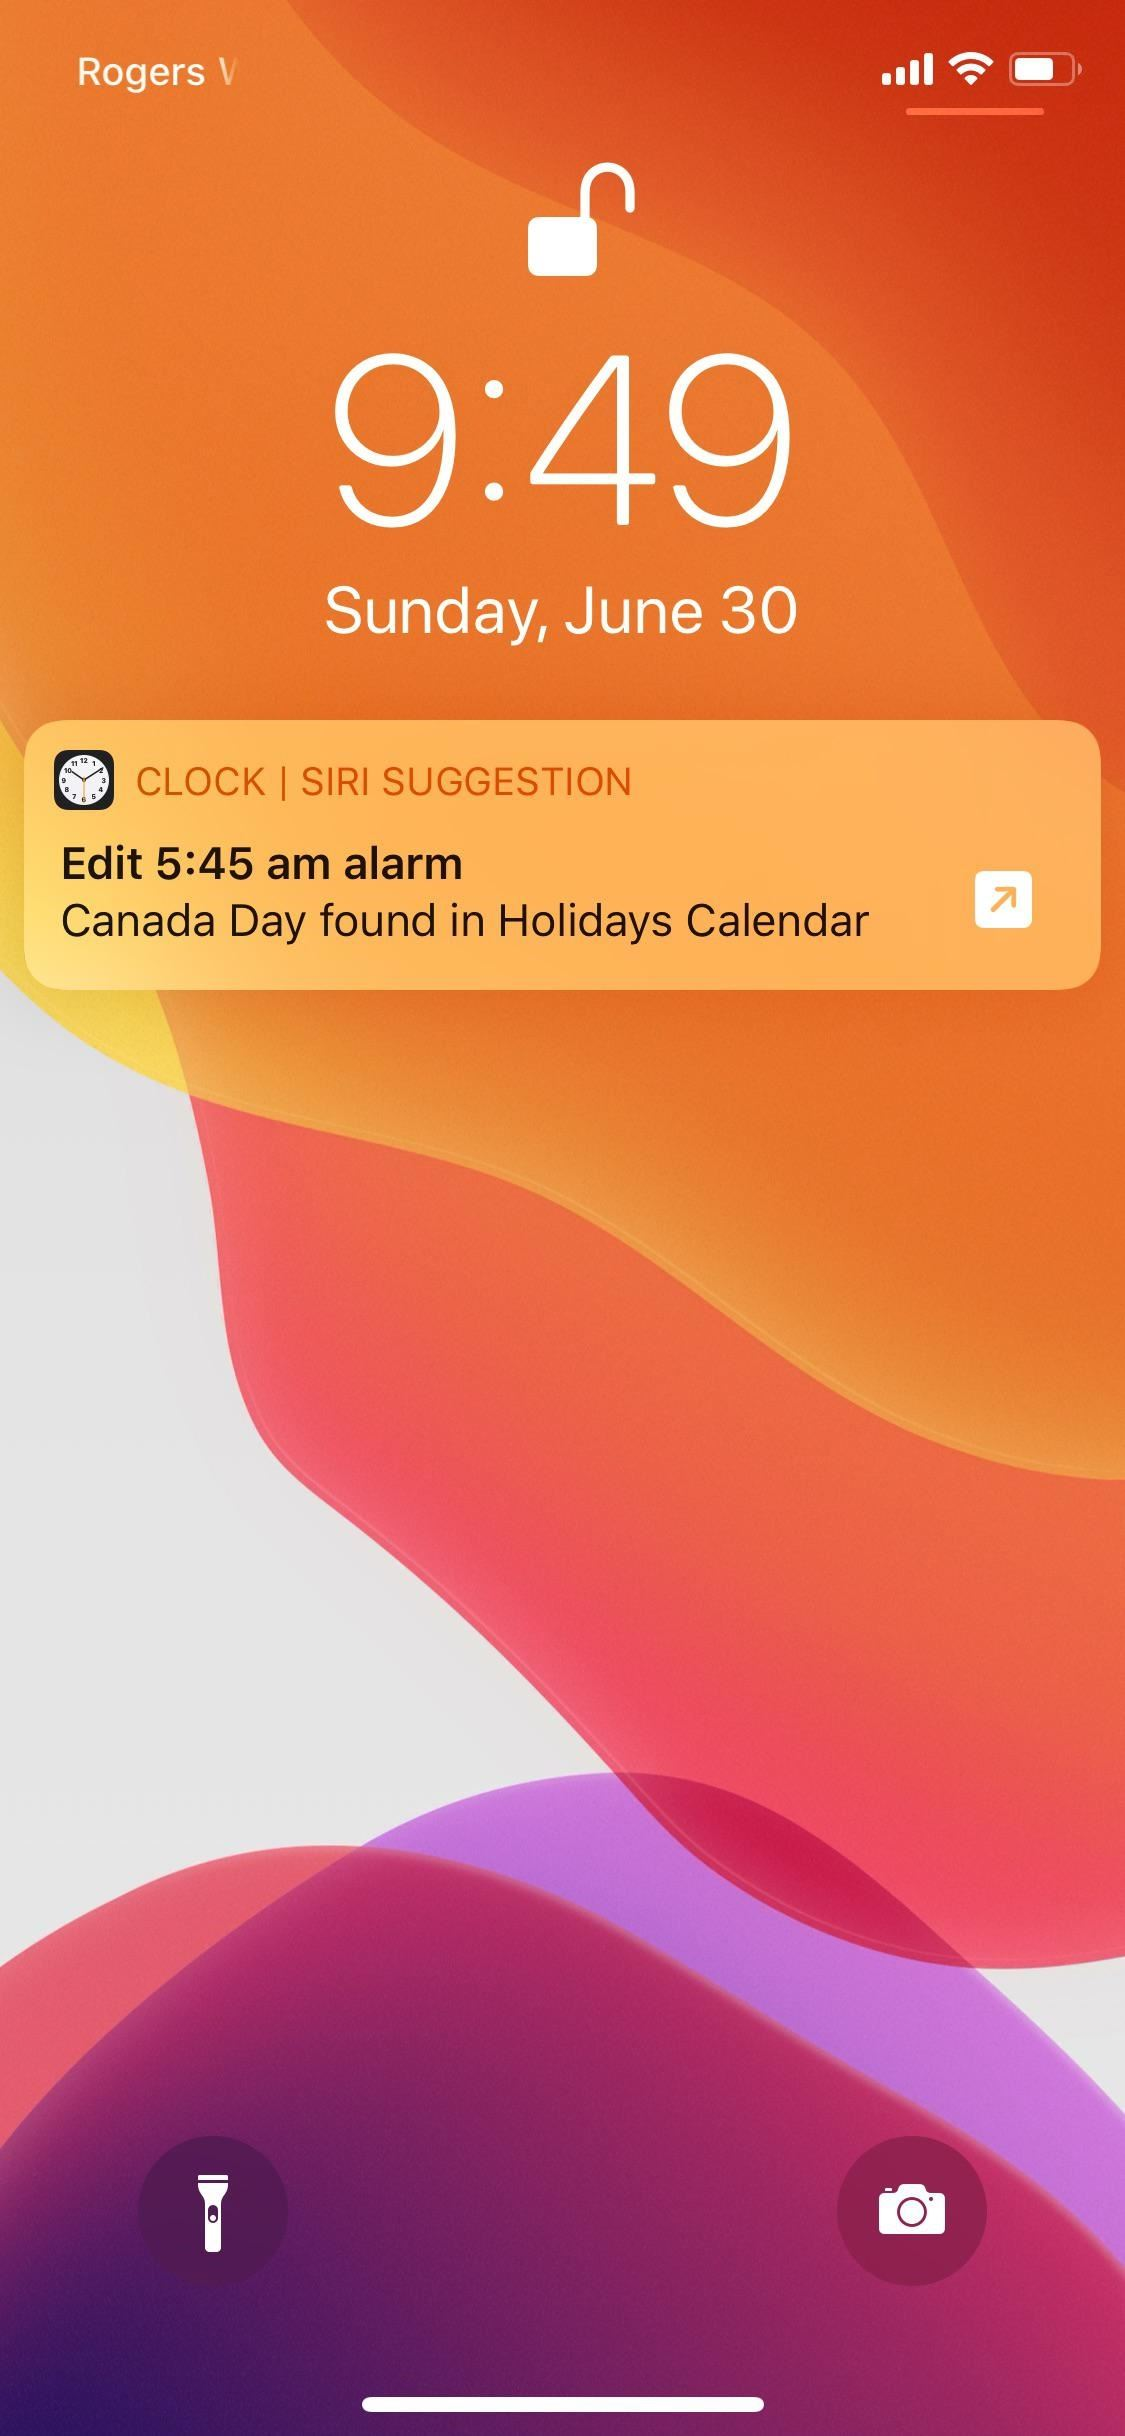 All the New Features & Commands for Siri in iOS 13